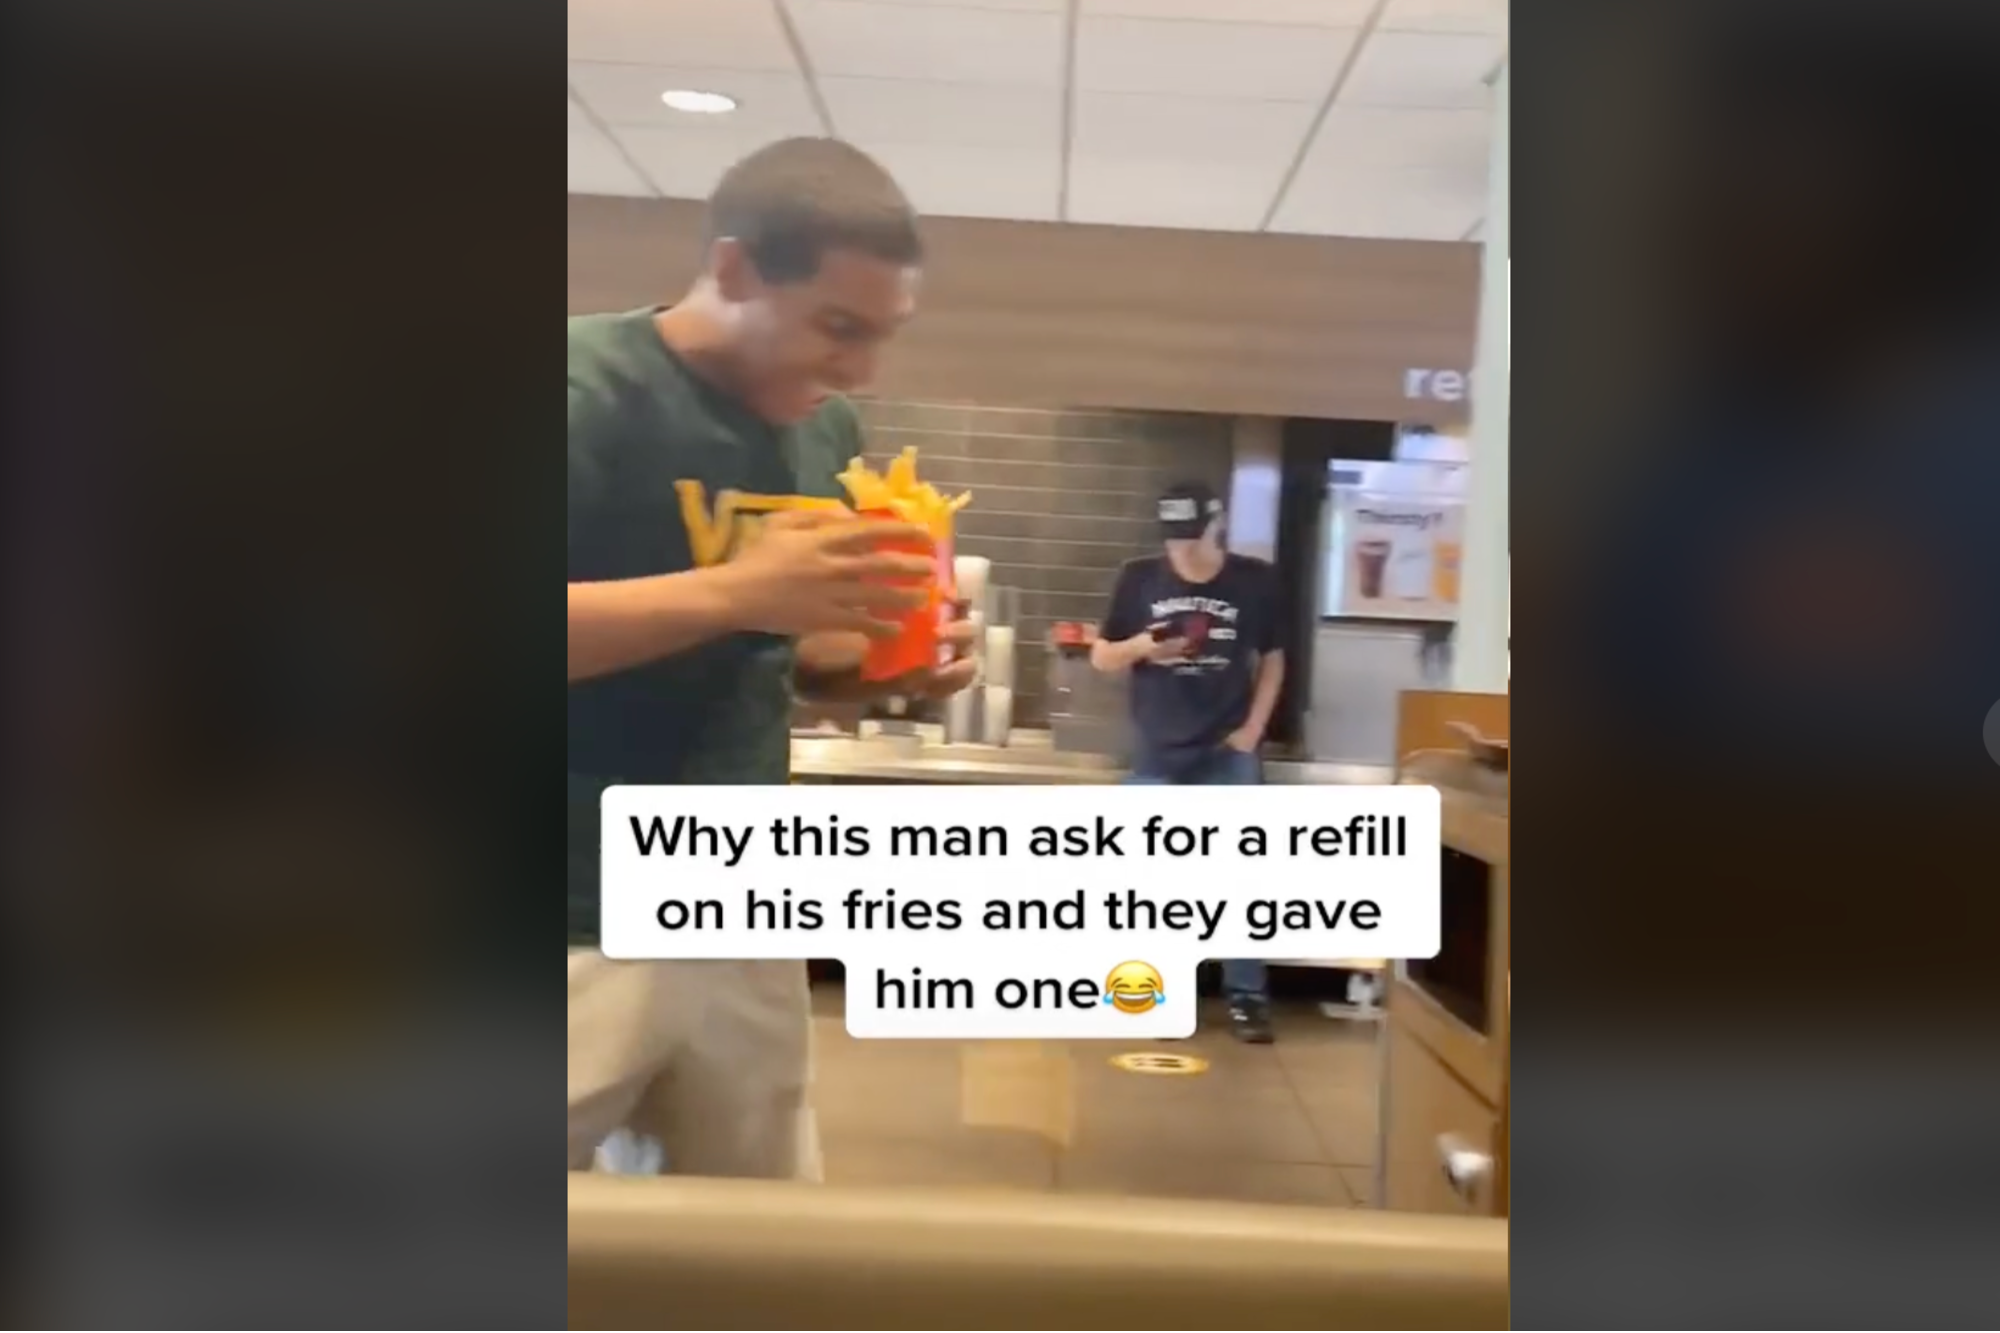 Viral Hack to Get Unlimited French Fry Refills at McDonald's Has Internet Going Wild: 'Turns Out They Have to Do This'